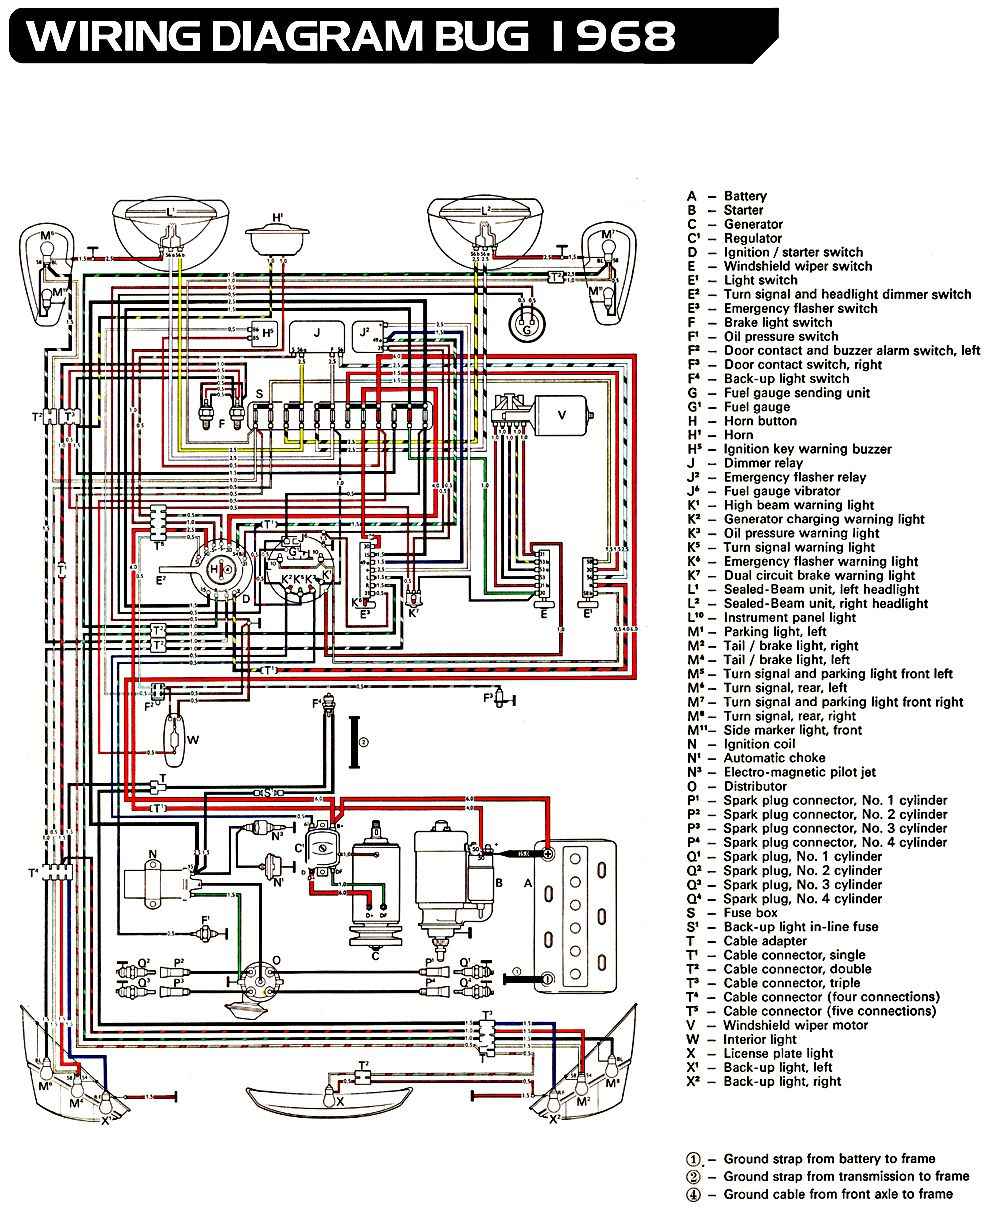 vw bug ignition wiring diagram - 73 vw wiring diagram free ... | vw vocho,  volkswagen escarabajo, vochos clasicos  pinterest